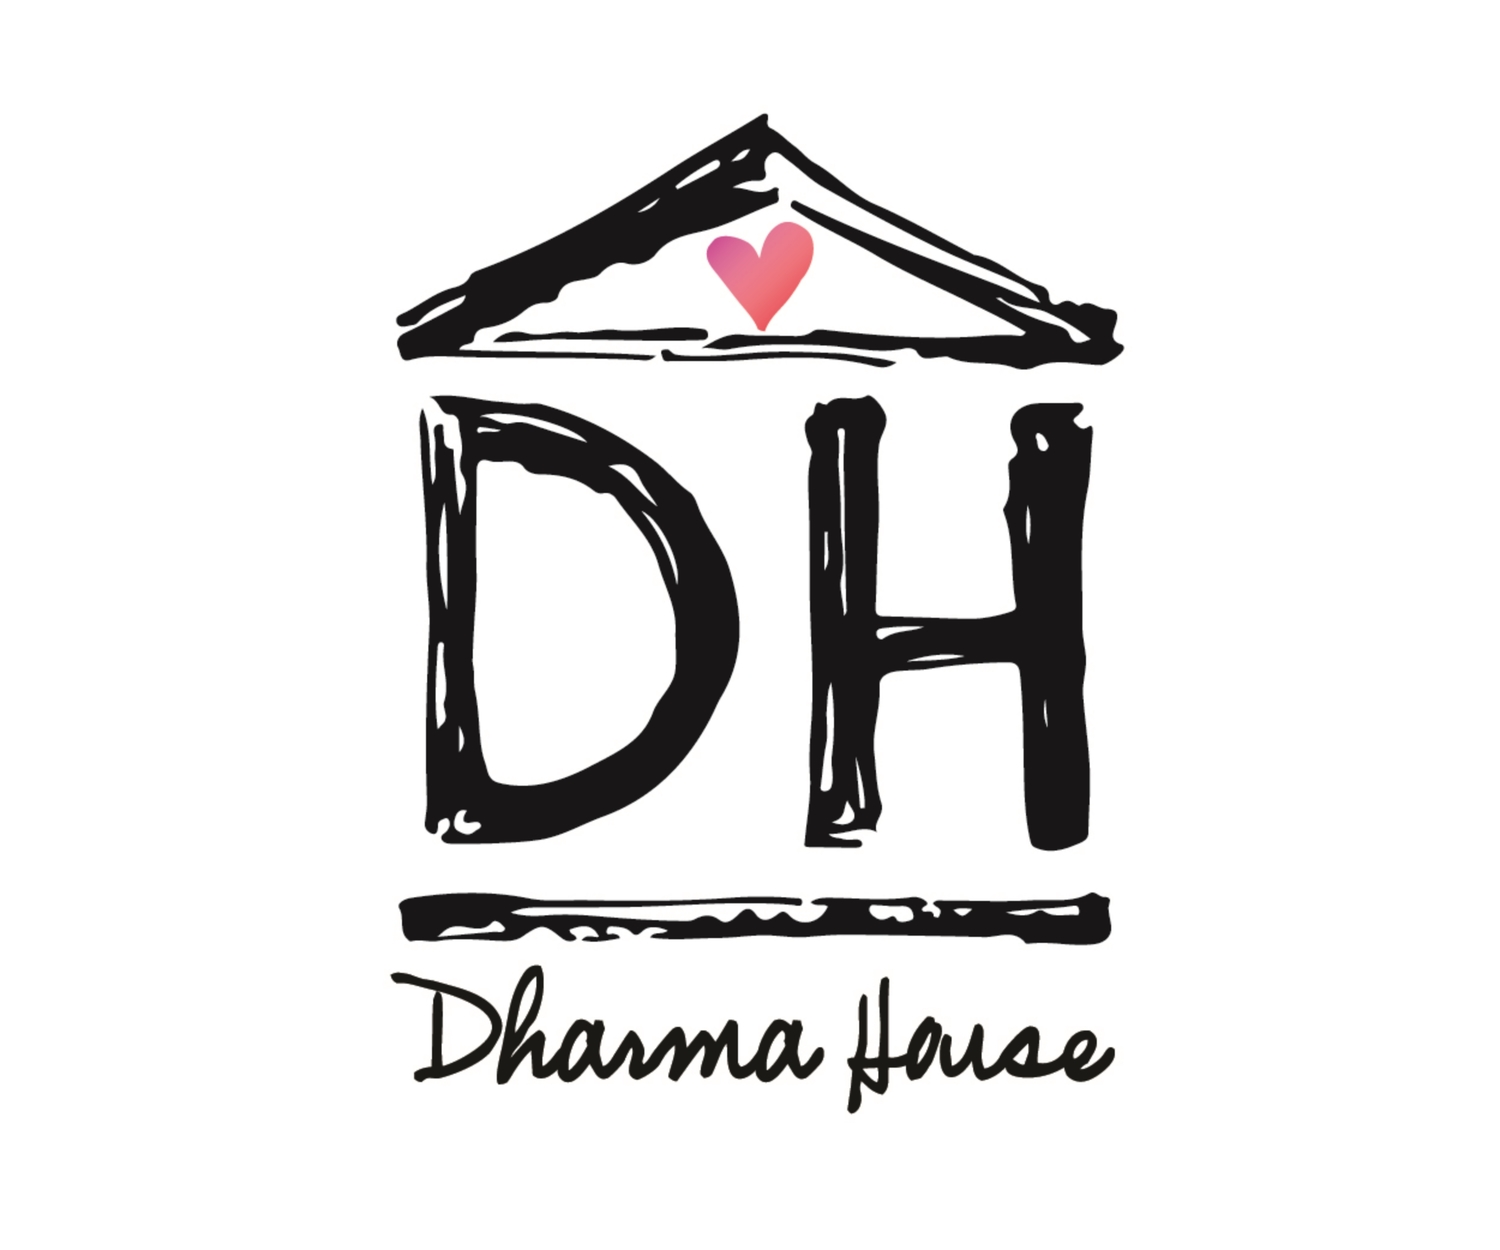 The Dharma House